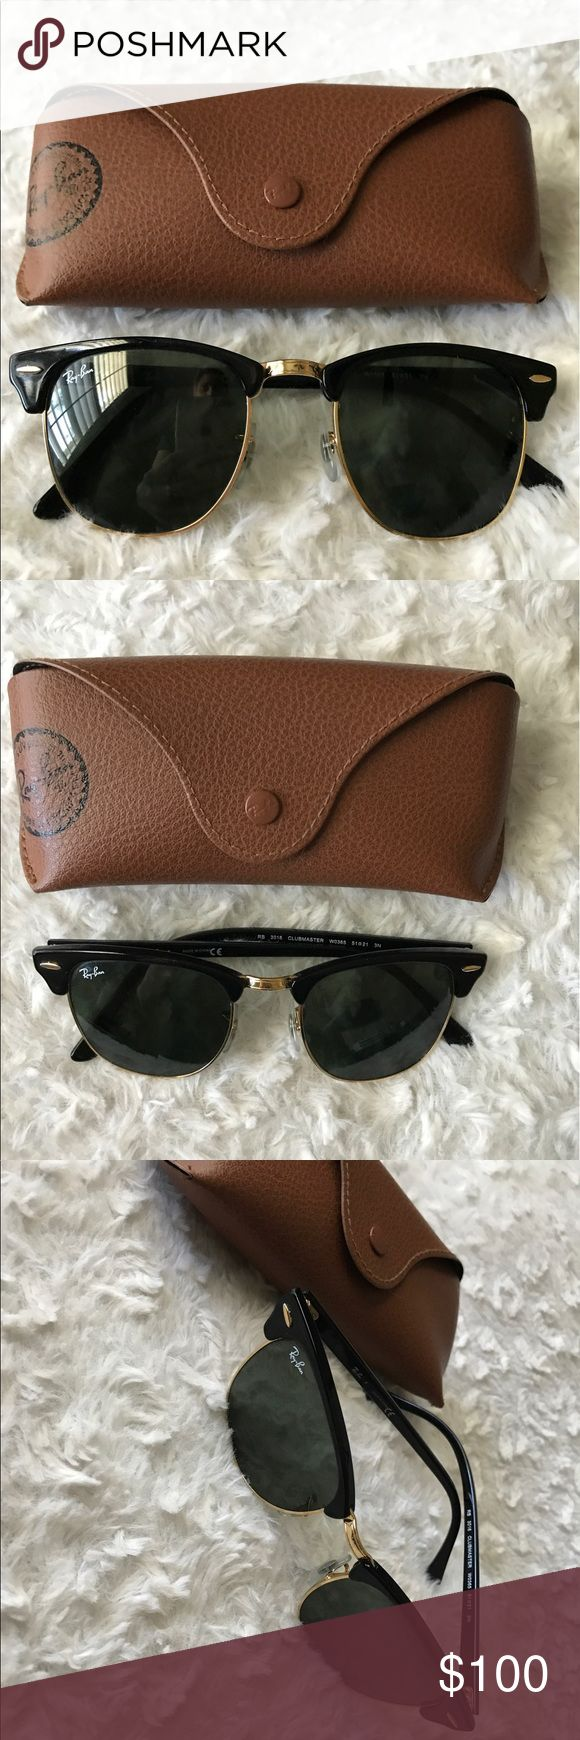 Ray ban clubmaster sunglasses Ray ban clubmaster sunglasses gently worn a few times. With case. Ray-Ban Accessories Glasses